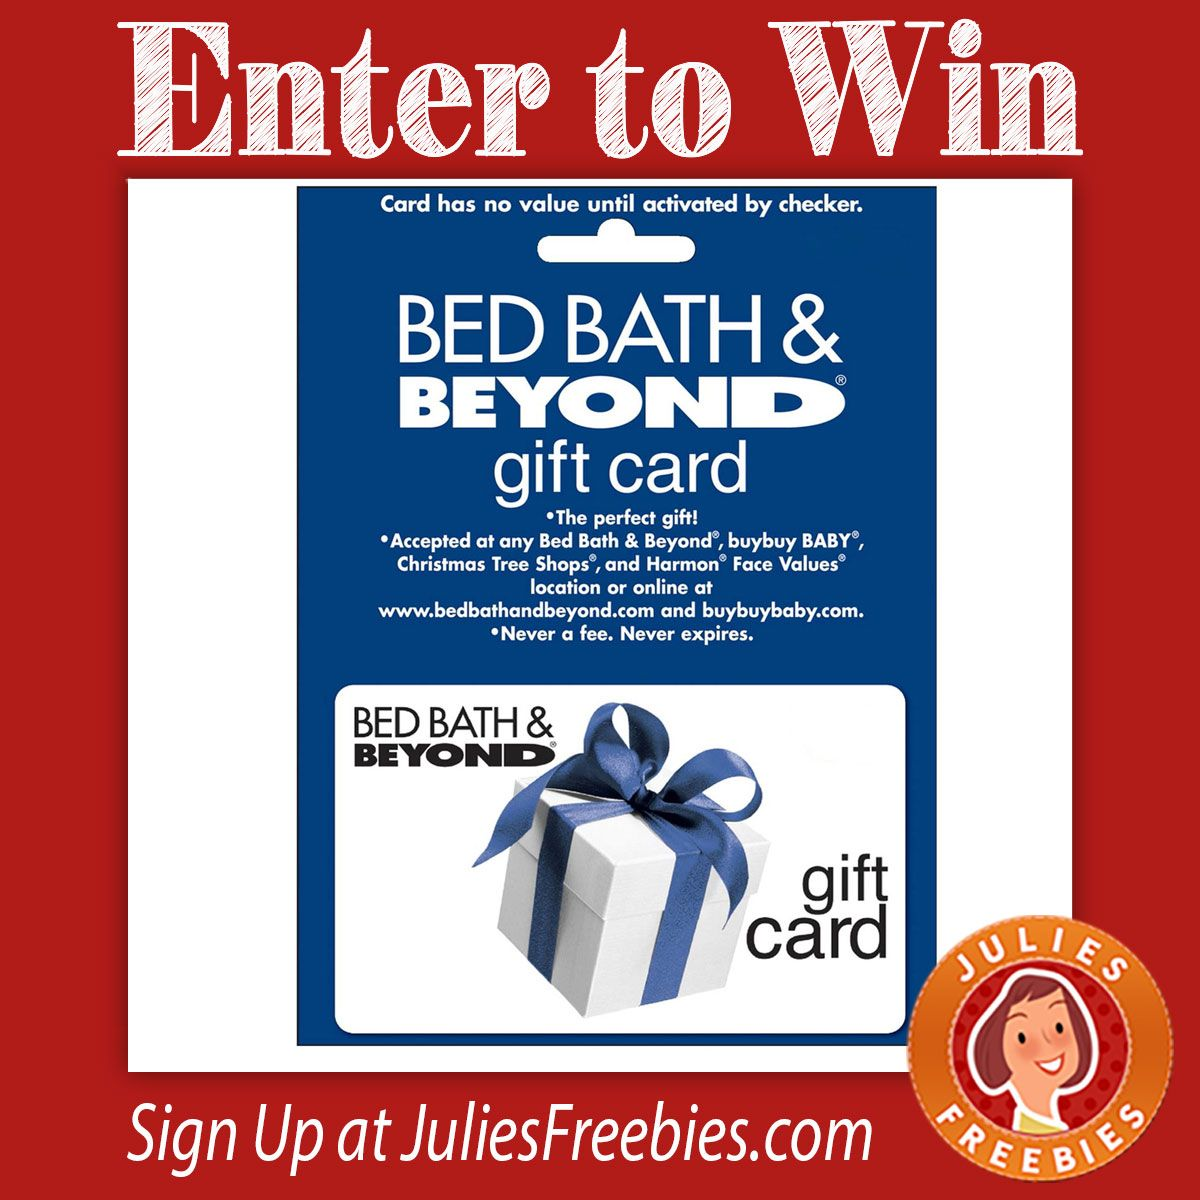 Win a 200 Bed Bath and Beyond Gift Card Gifts, Cards